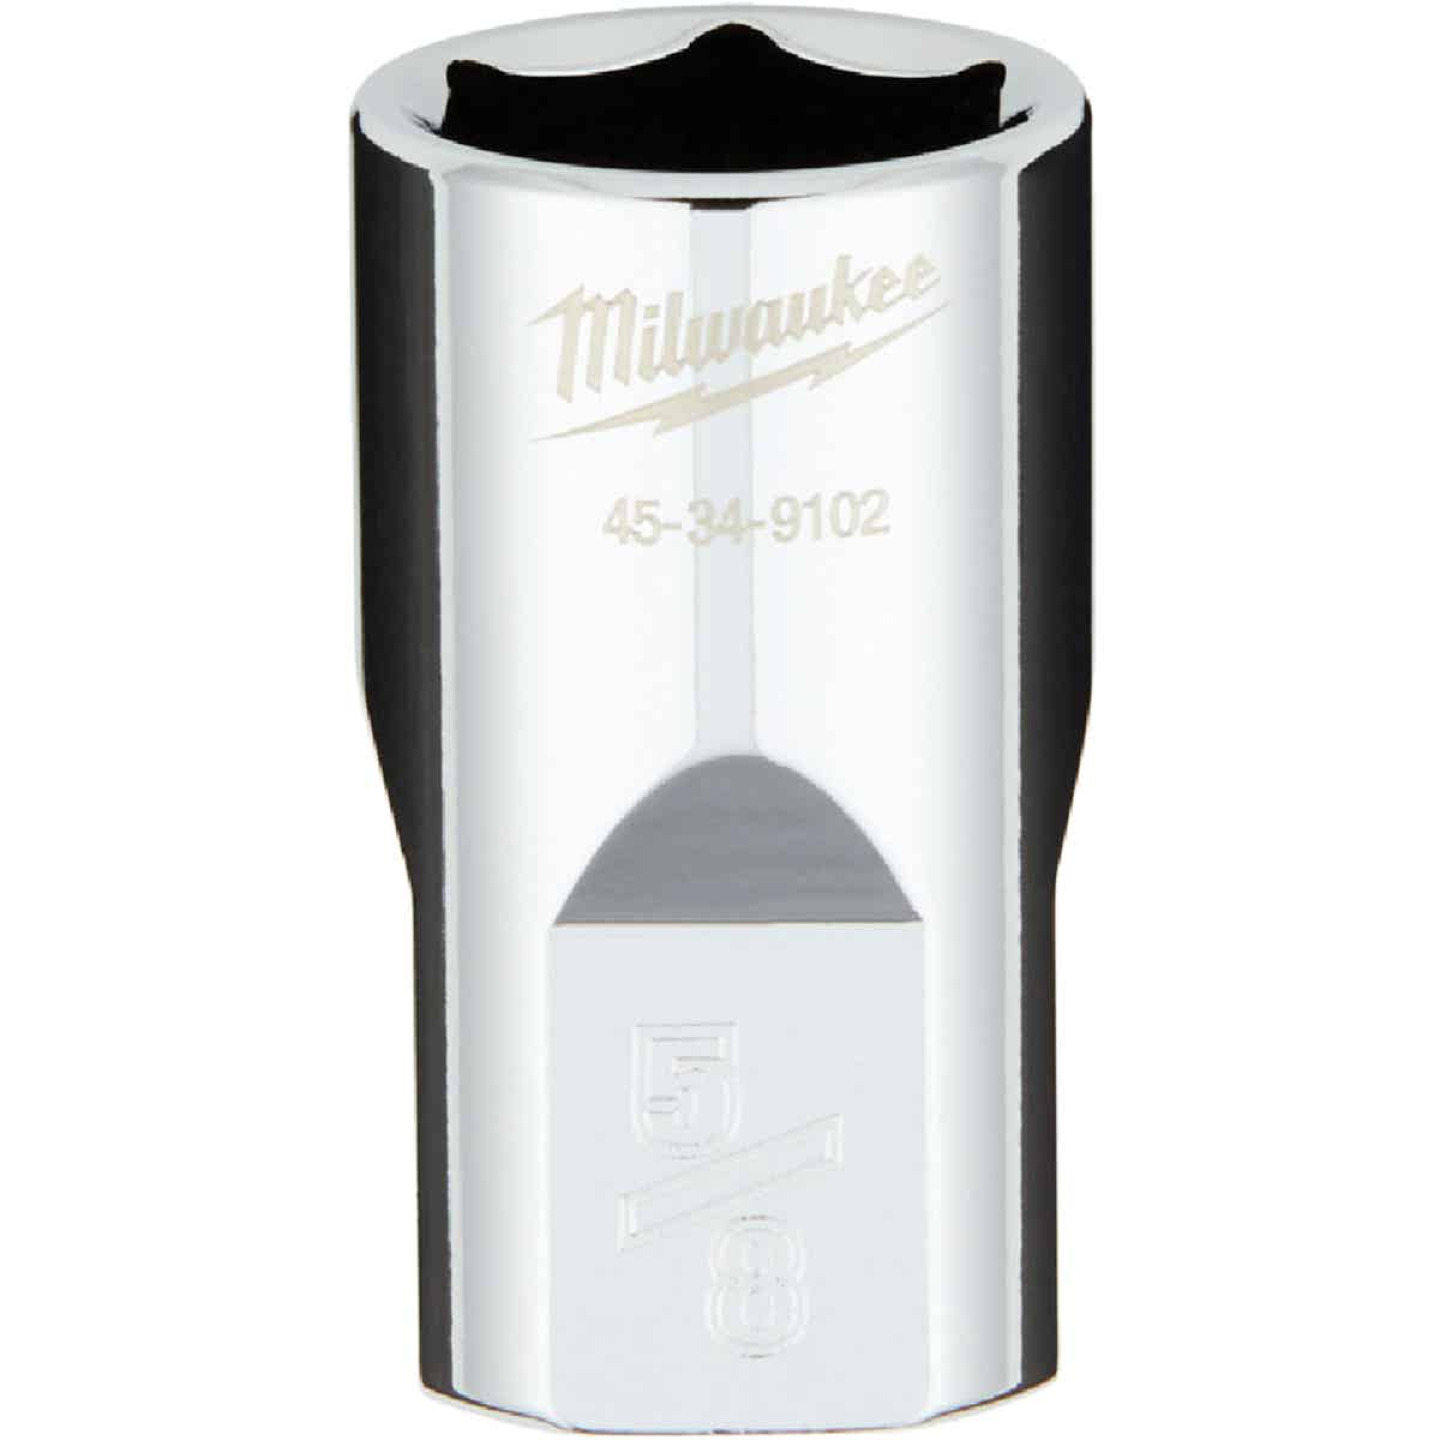 Milwaukee 1/2 In. Drive 5/8 In. 6-Point Shallow Standard Socket with FOUR FLAT Sides Image 1